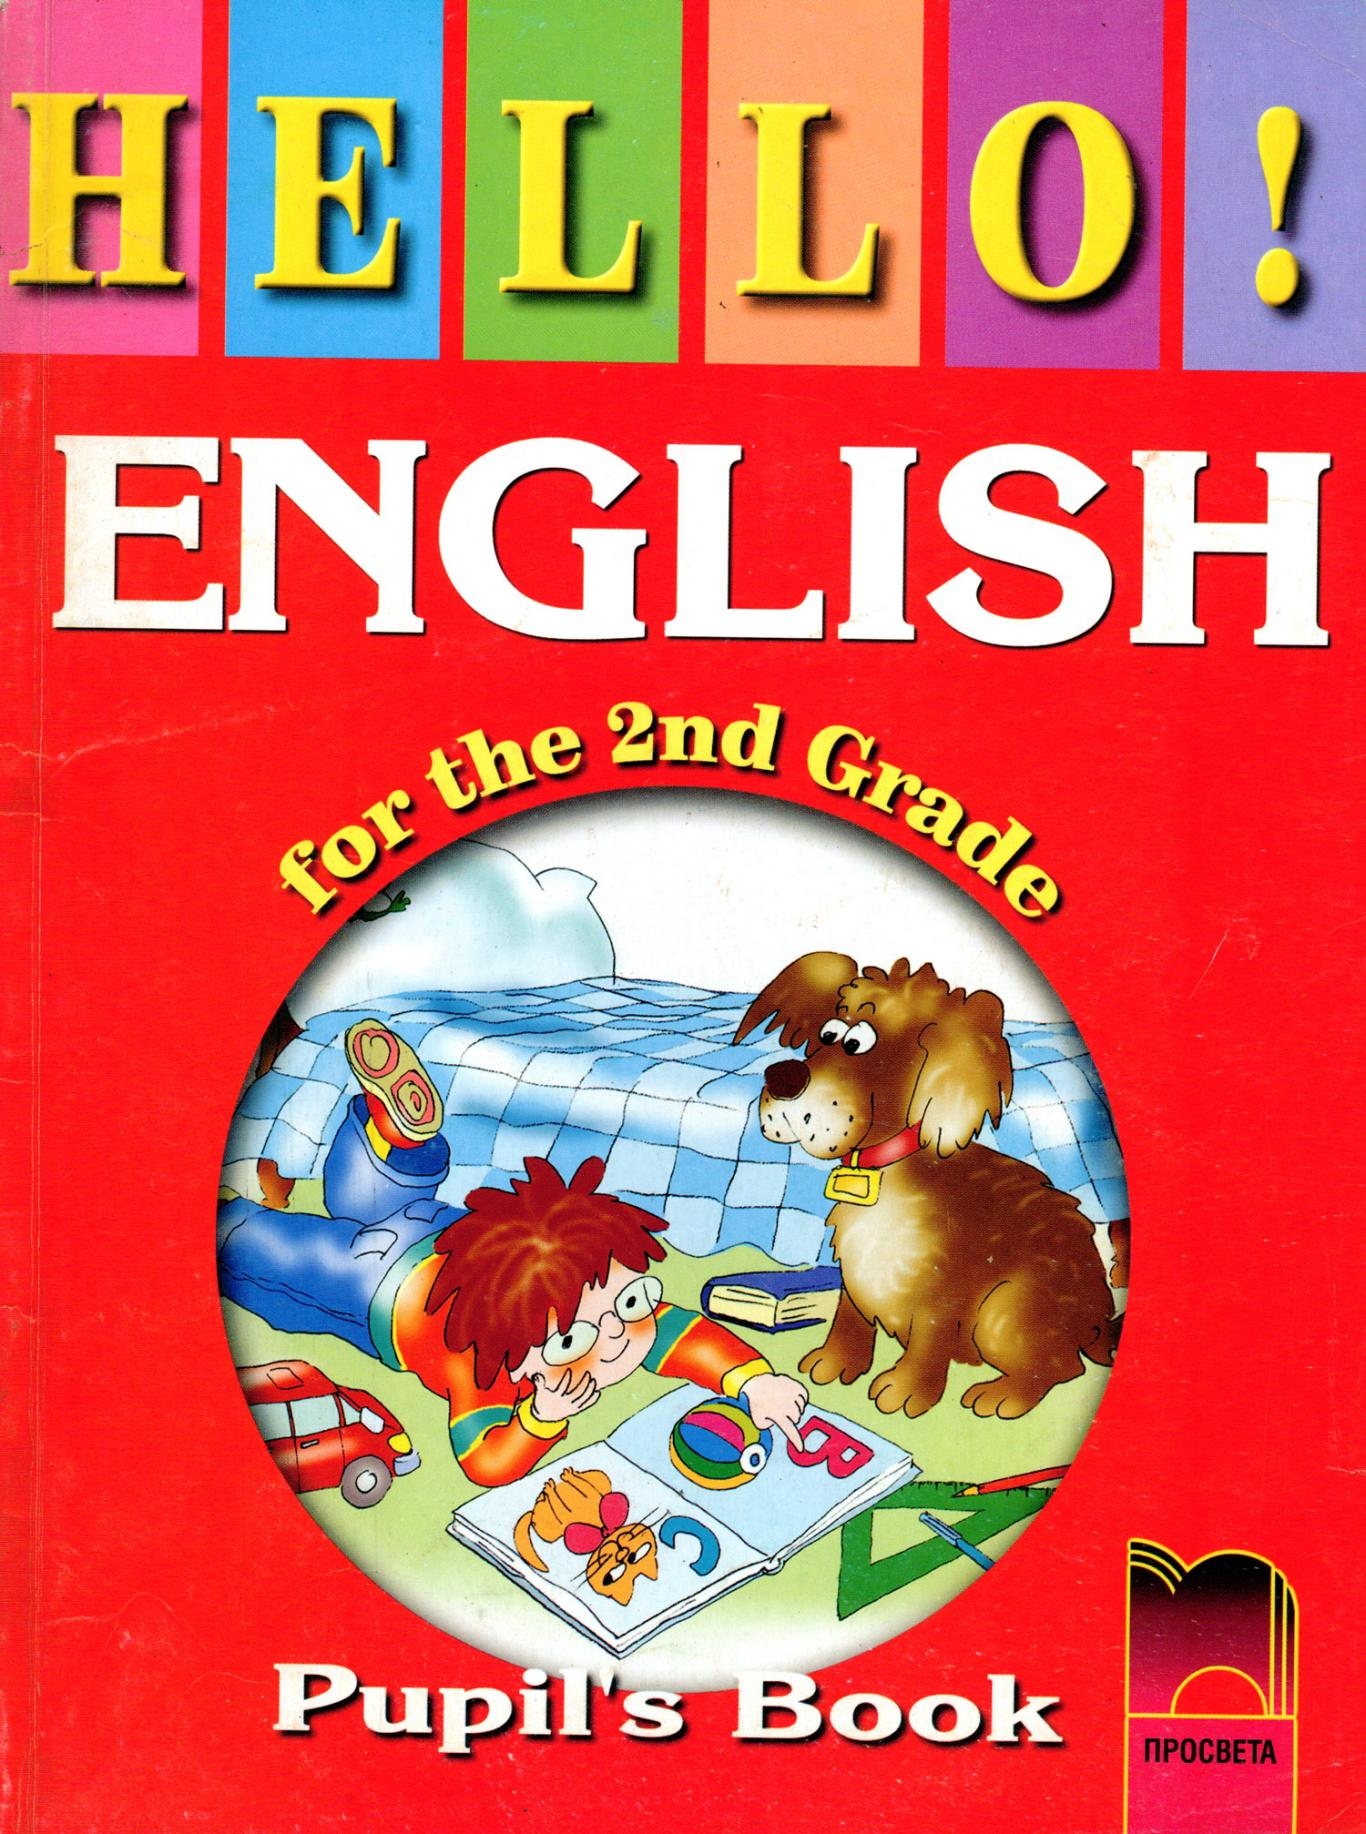 Hello! English for the 2nd Grade. Pupil's Book, Emilia Koleva, Nelly Georgieva